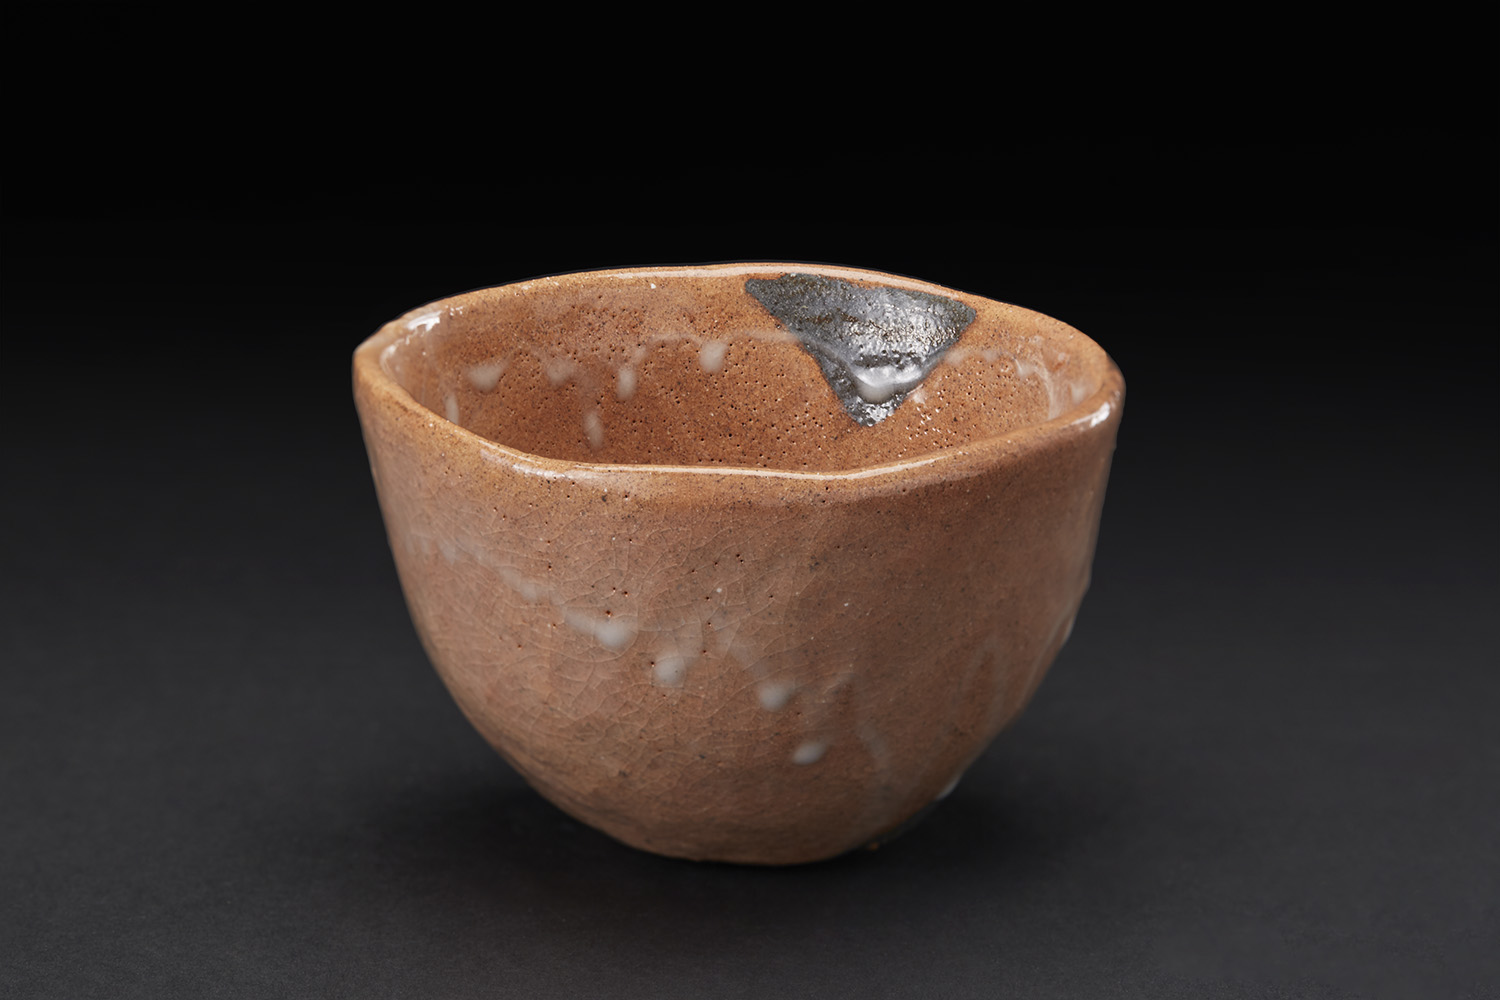 Shozo Michikawa    Tea Bowl  , 2010 Stoneware with Benikohiki glaze 3.19 x 4.49 x 4.49 inches 8.1 x 11.4 x 11.4 cm SMi 25